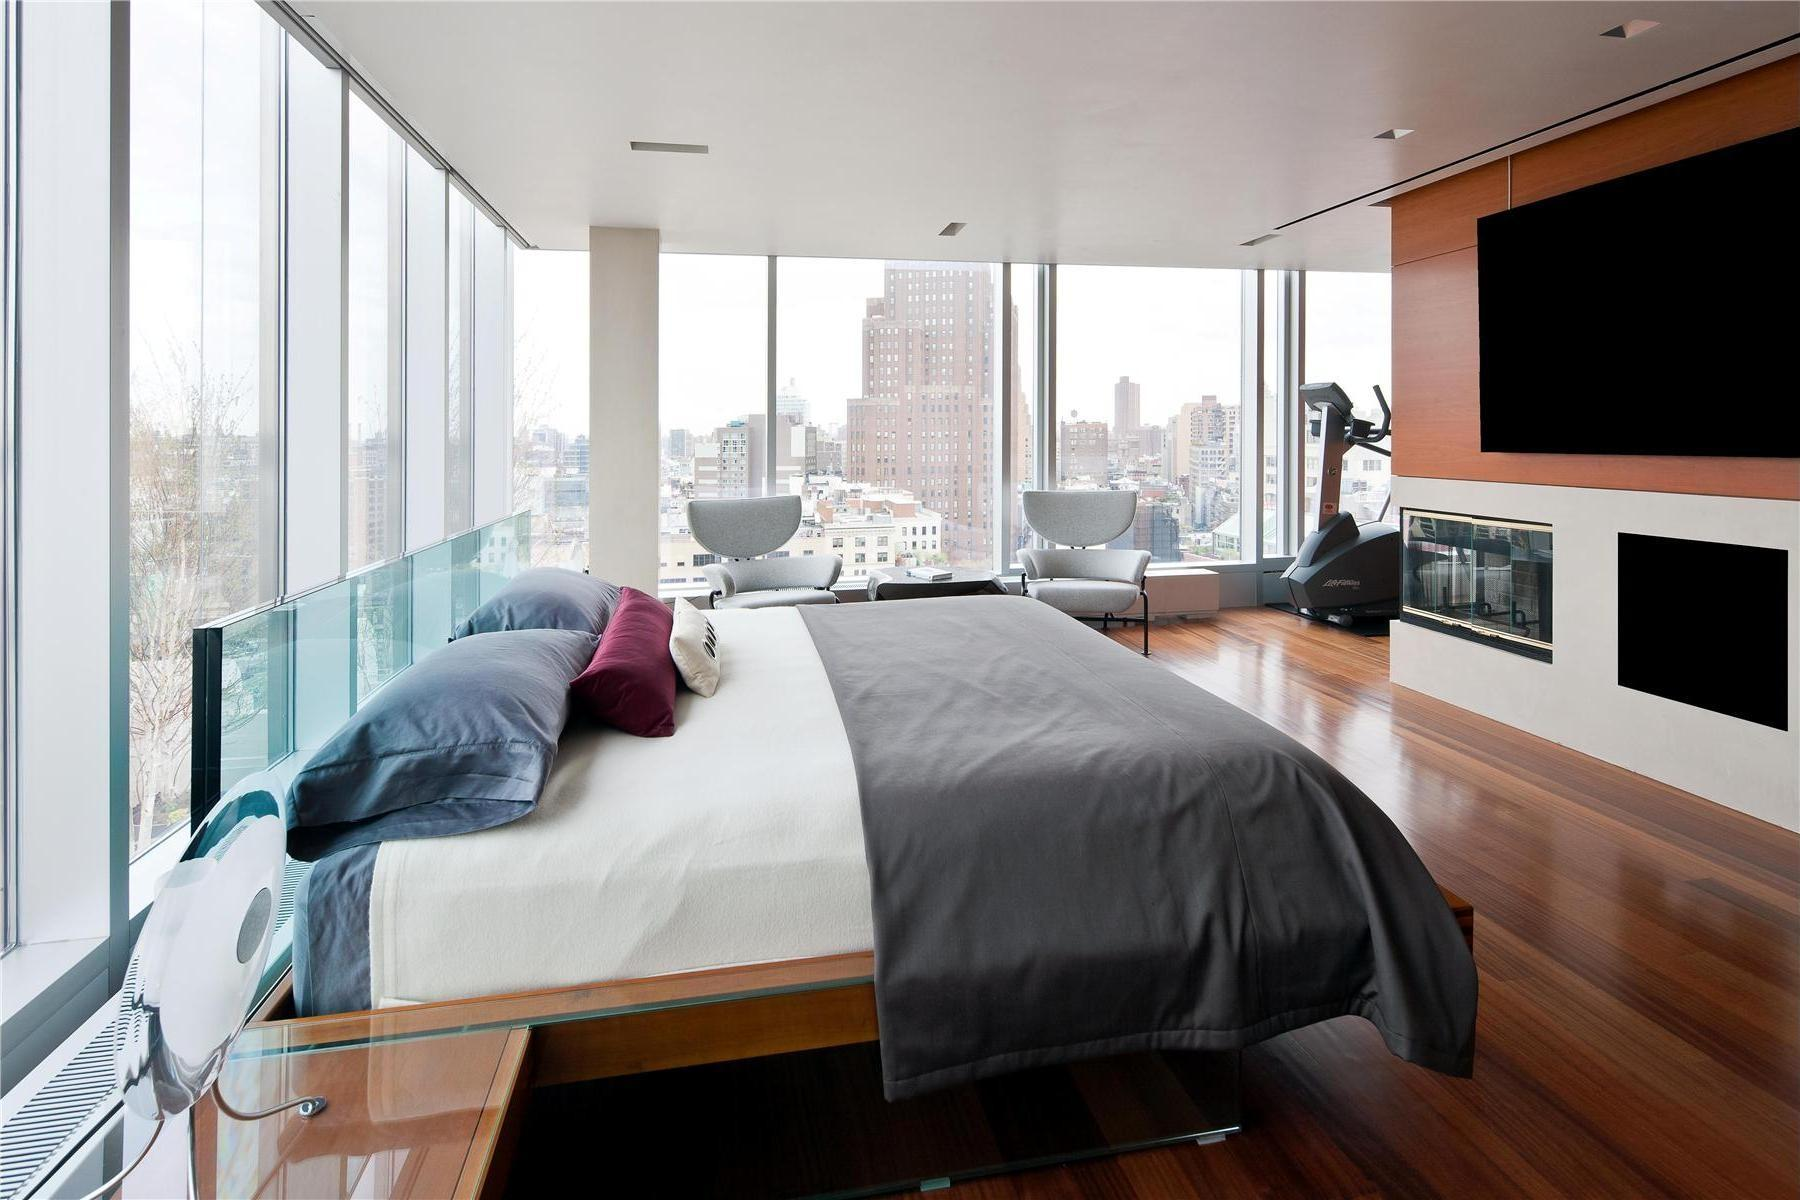 New York City Cools Modern Penthouses Ideas Inspirations